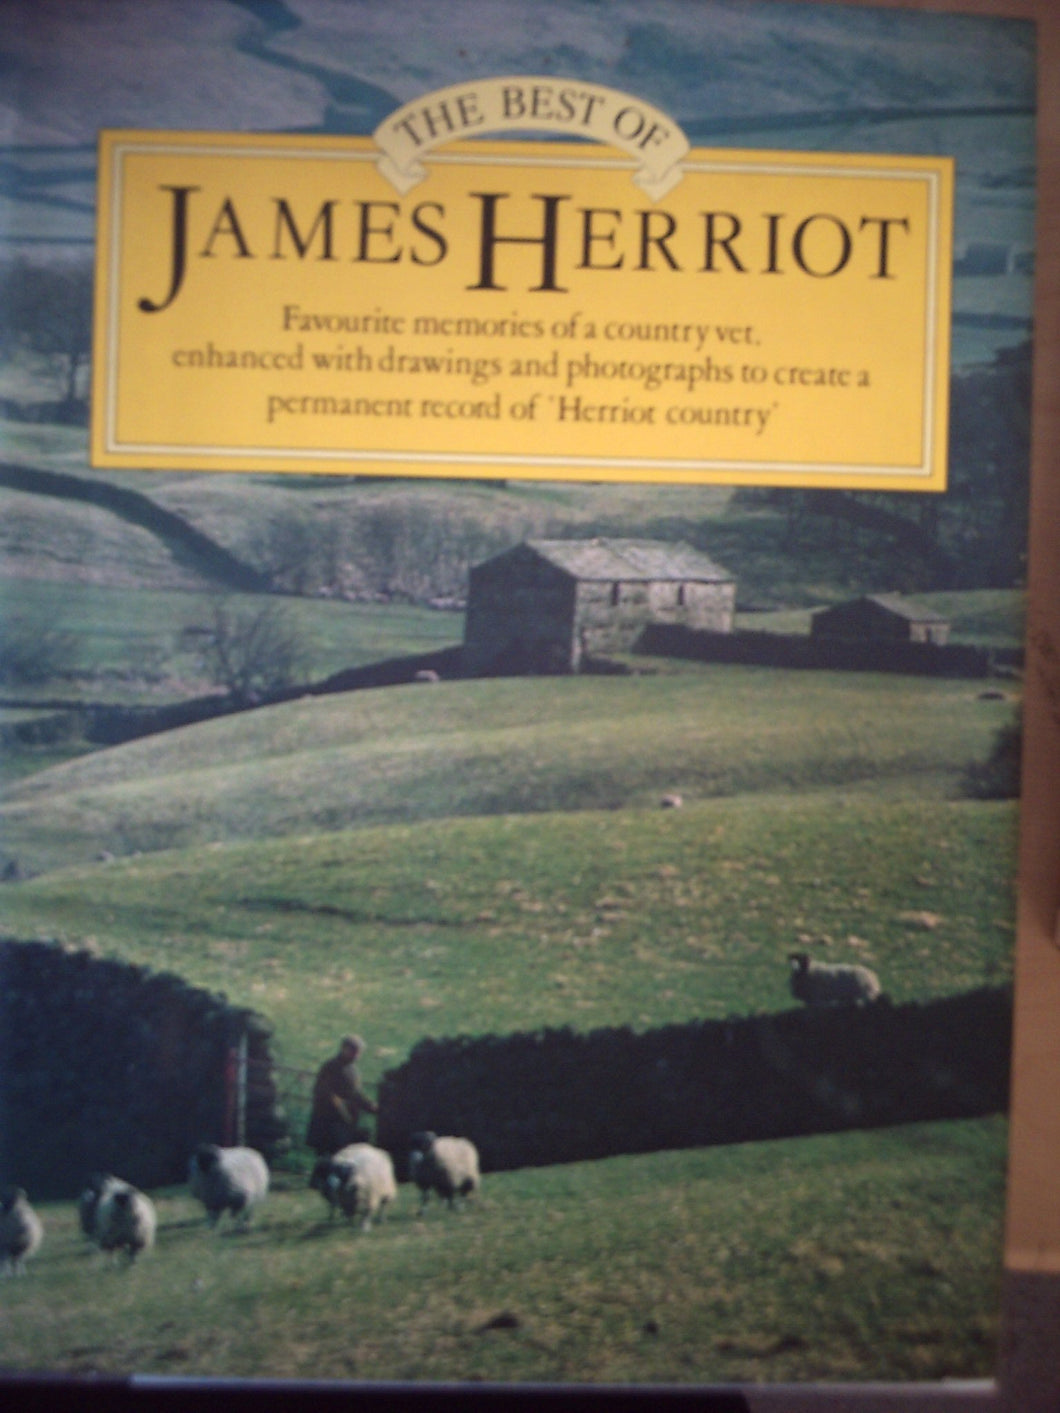 The Best of James Herriot: Favourite Memories of a Country Vet Herriot, James